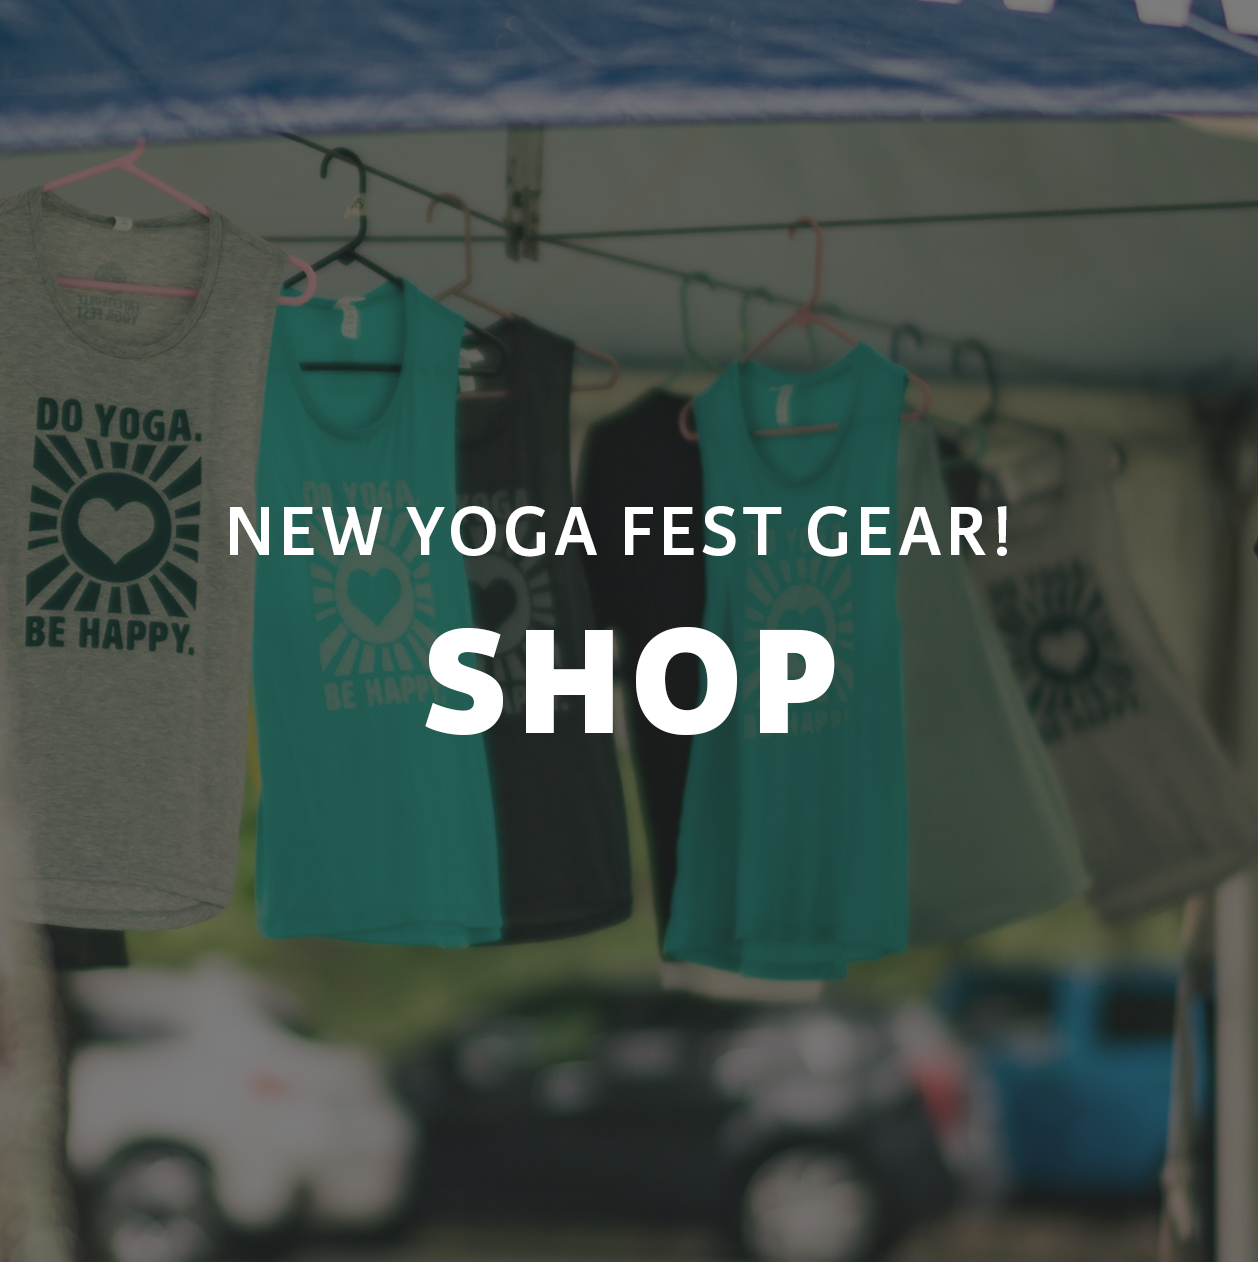 Shop new yoga fest gear from Fayetteville Yoga Fest in Northwest Arkansas